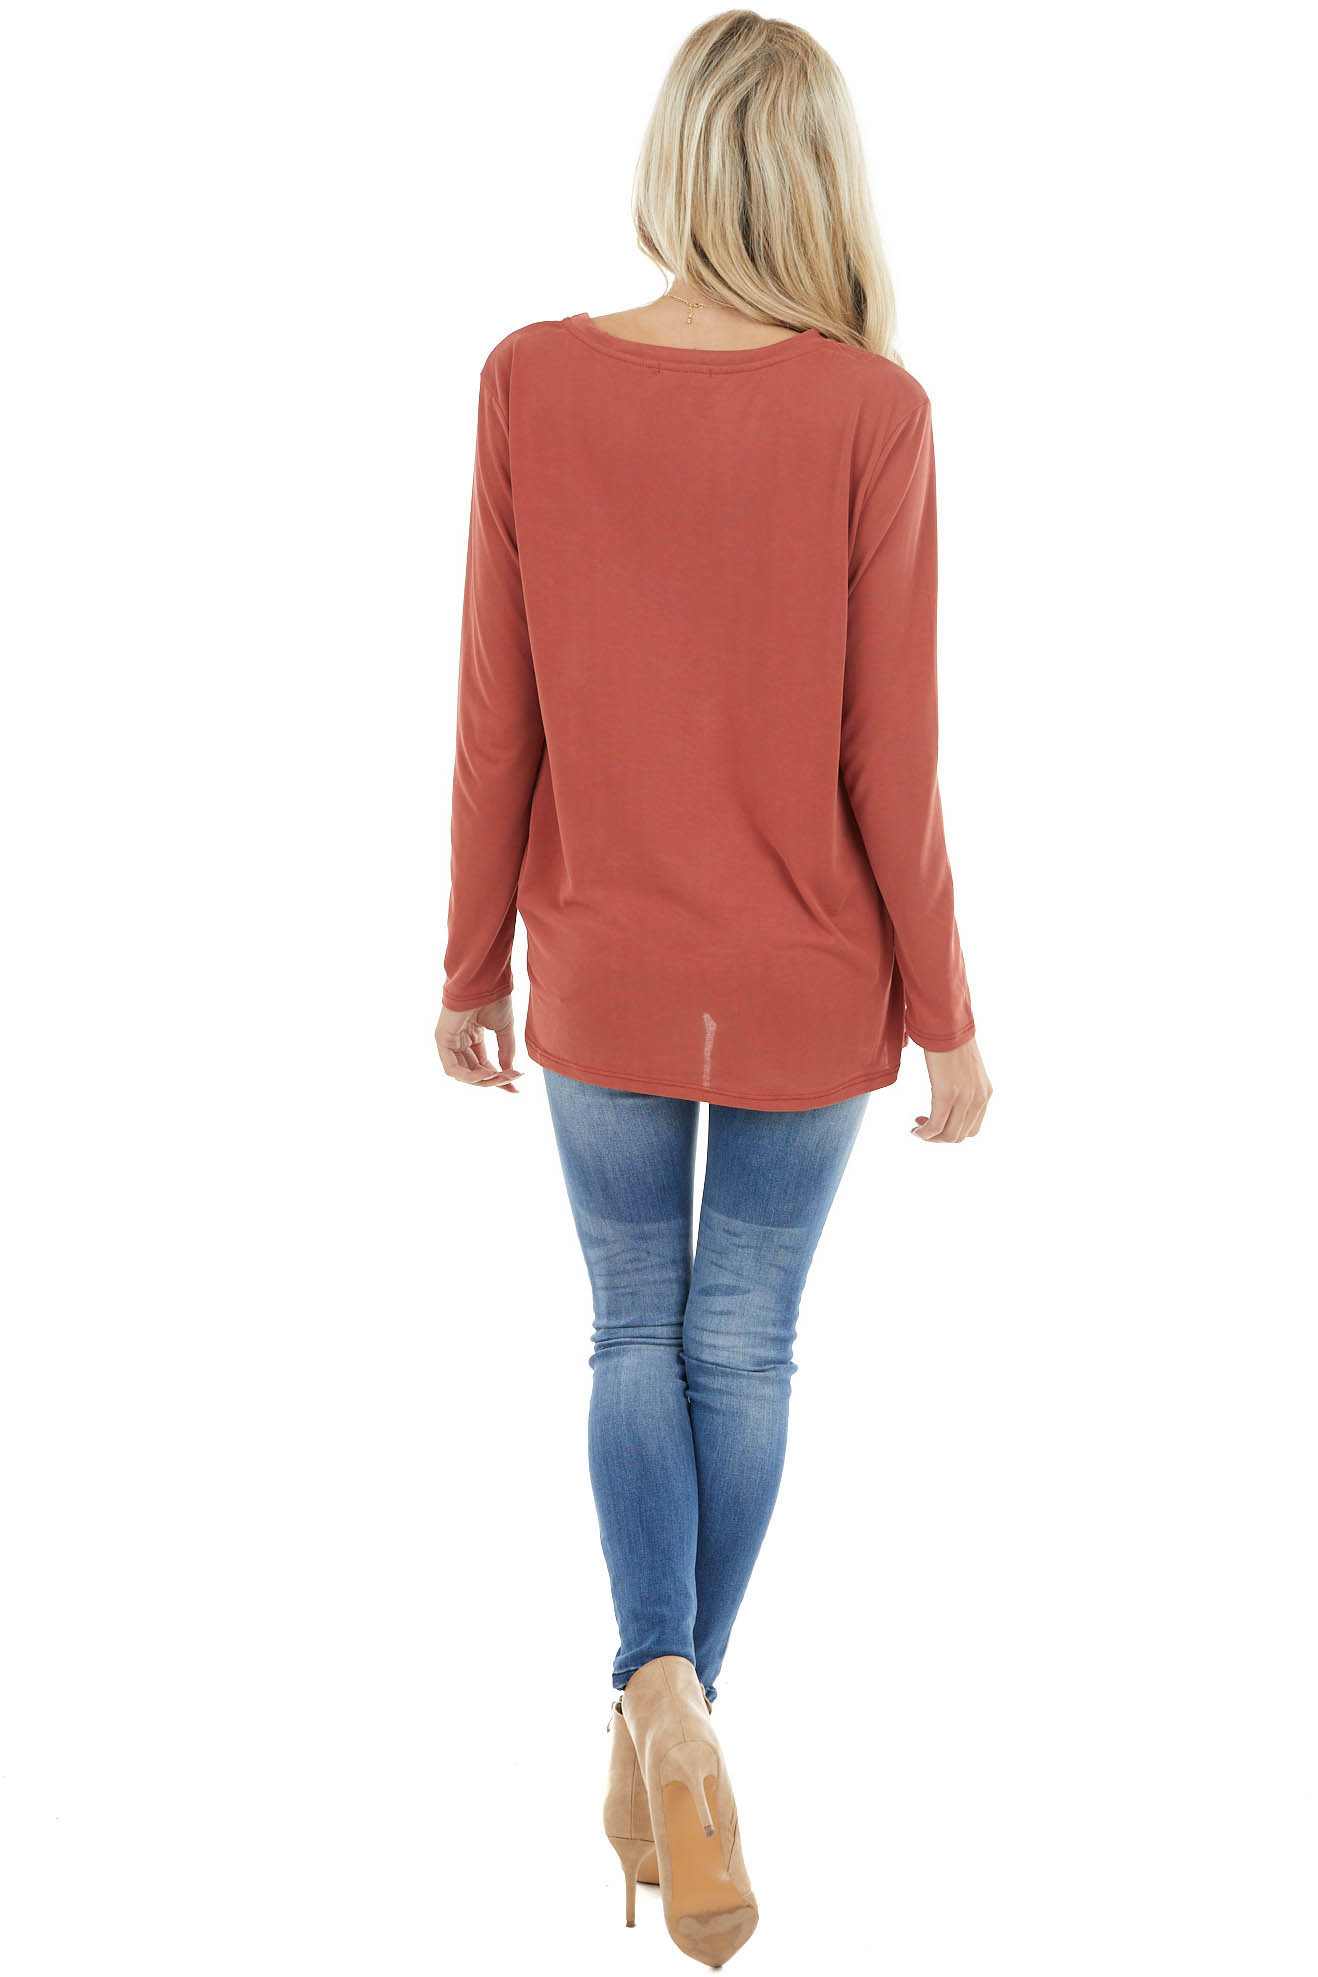 Terracotta Long Sleeve Top with Front Twisted Knot Detail